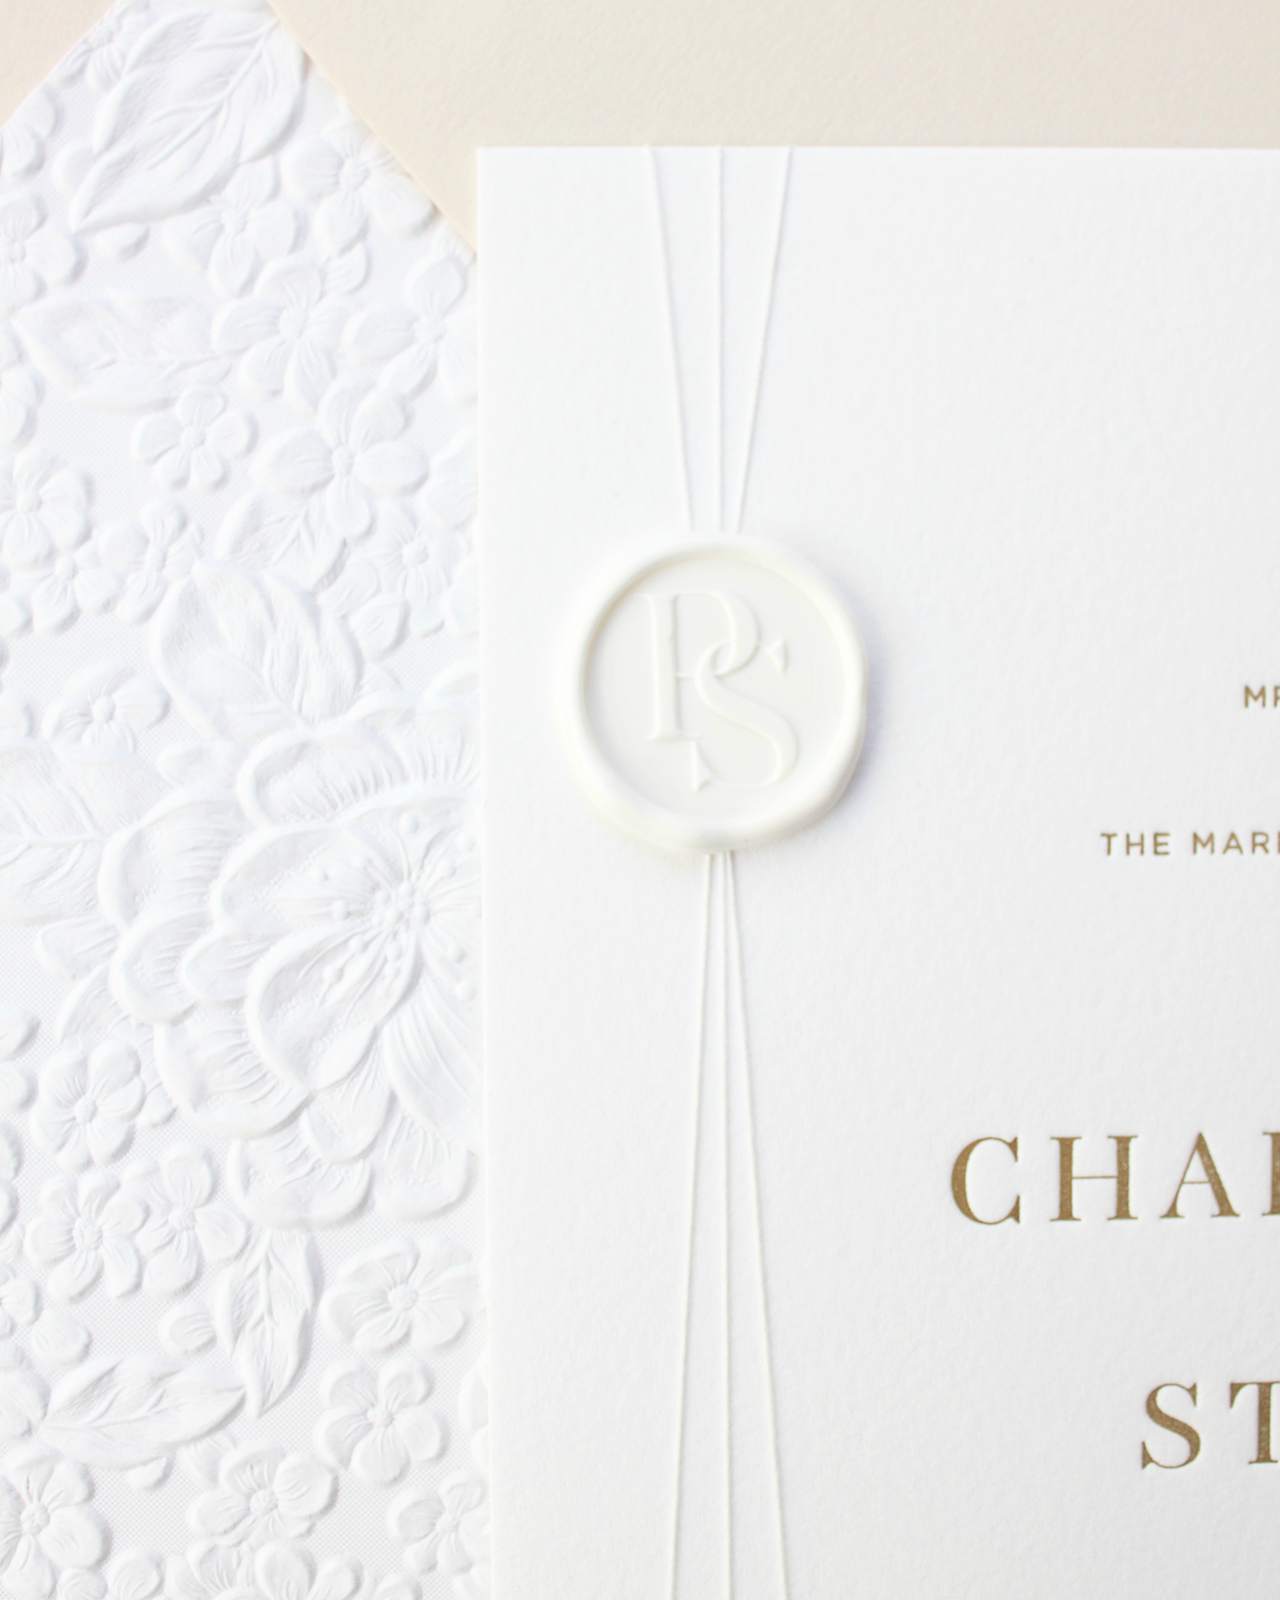 Refined Modern Neutral Letterpress Wedding Invitations by Bourne Paper Co.